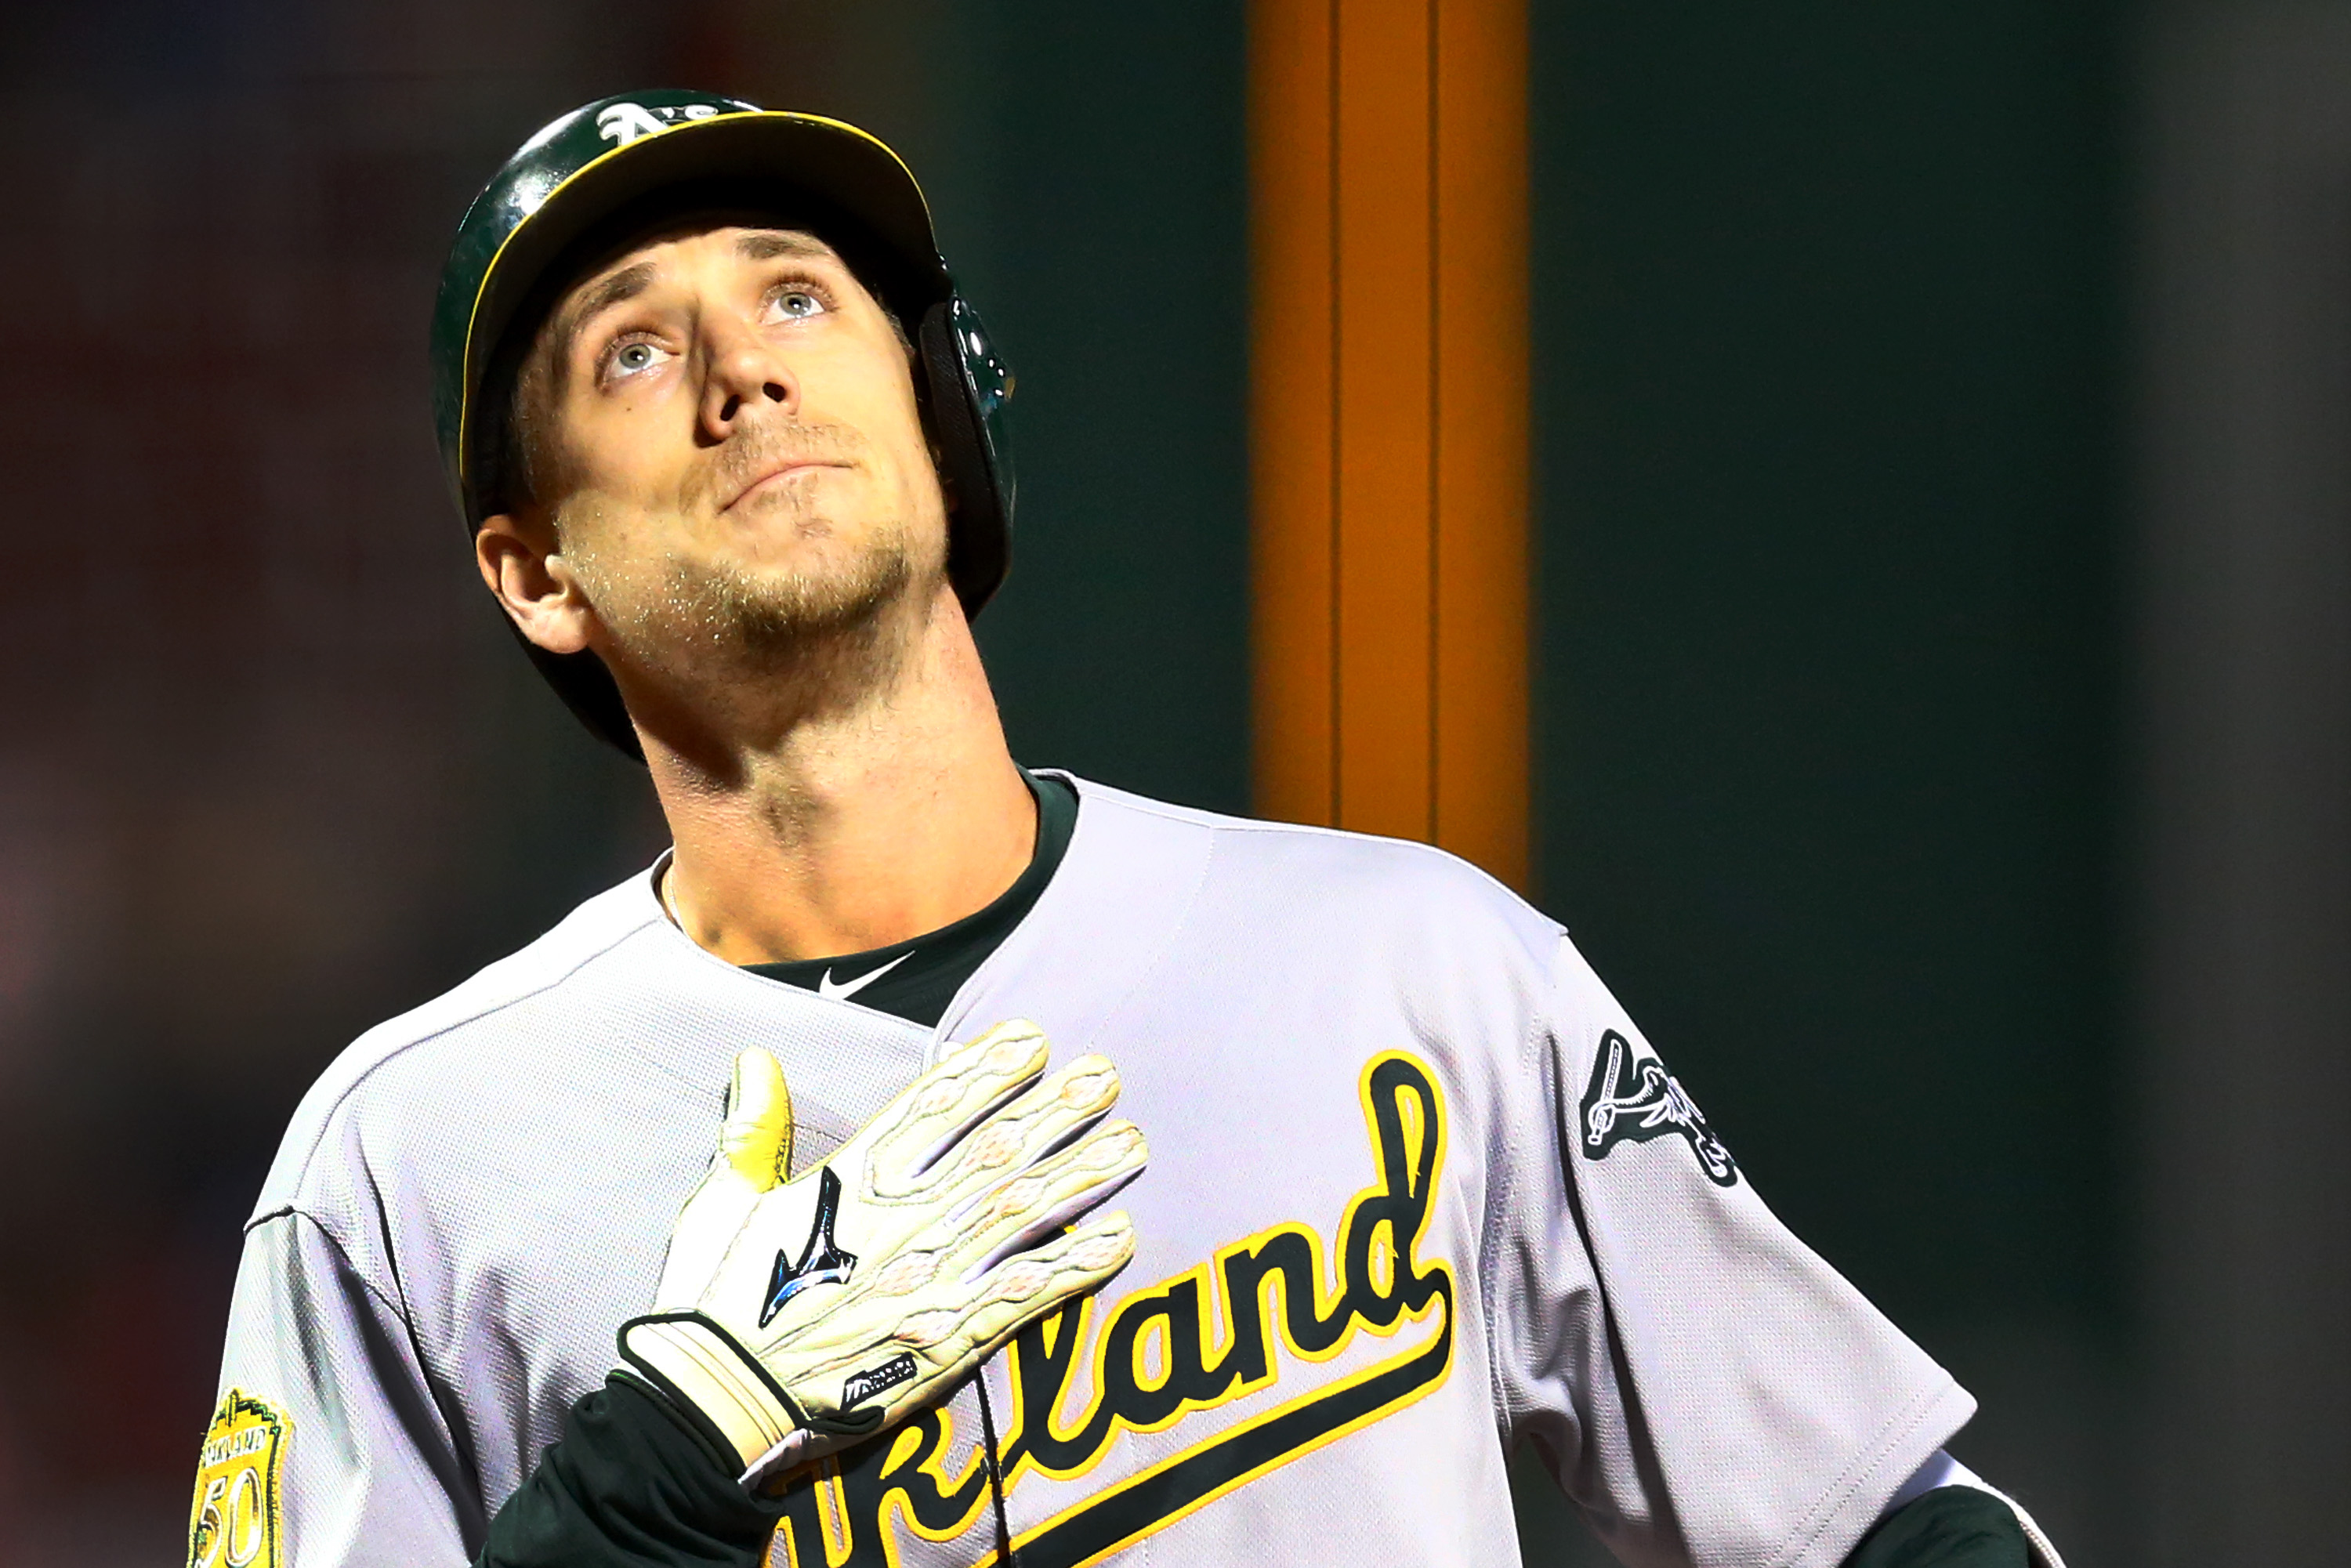 Oakland Athletics outfielder Stephen Piscotty homered in his first game after his mother died in May 2018.